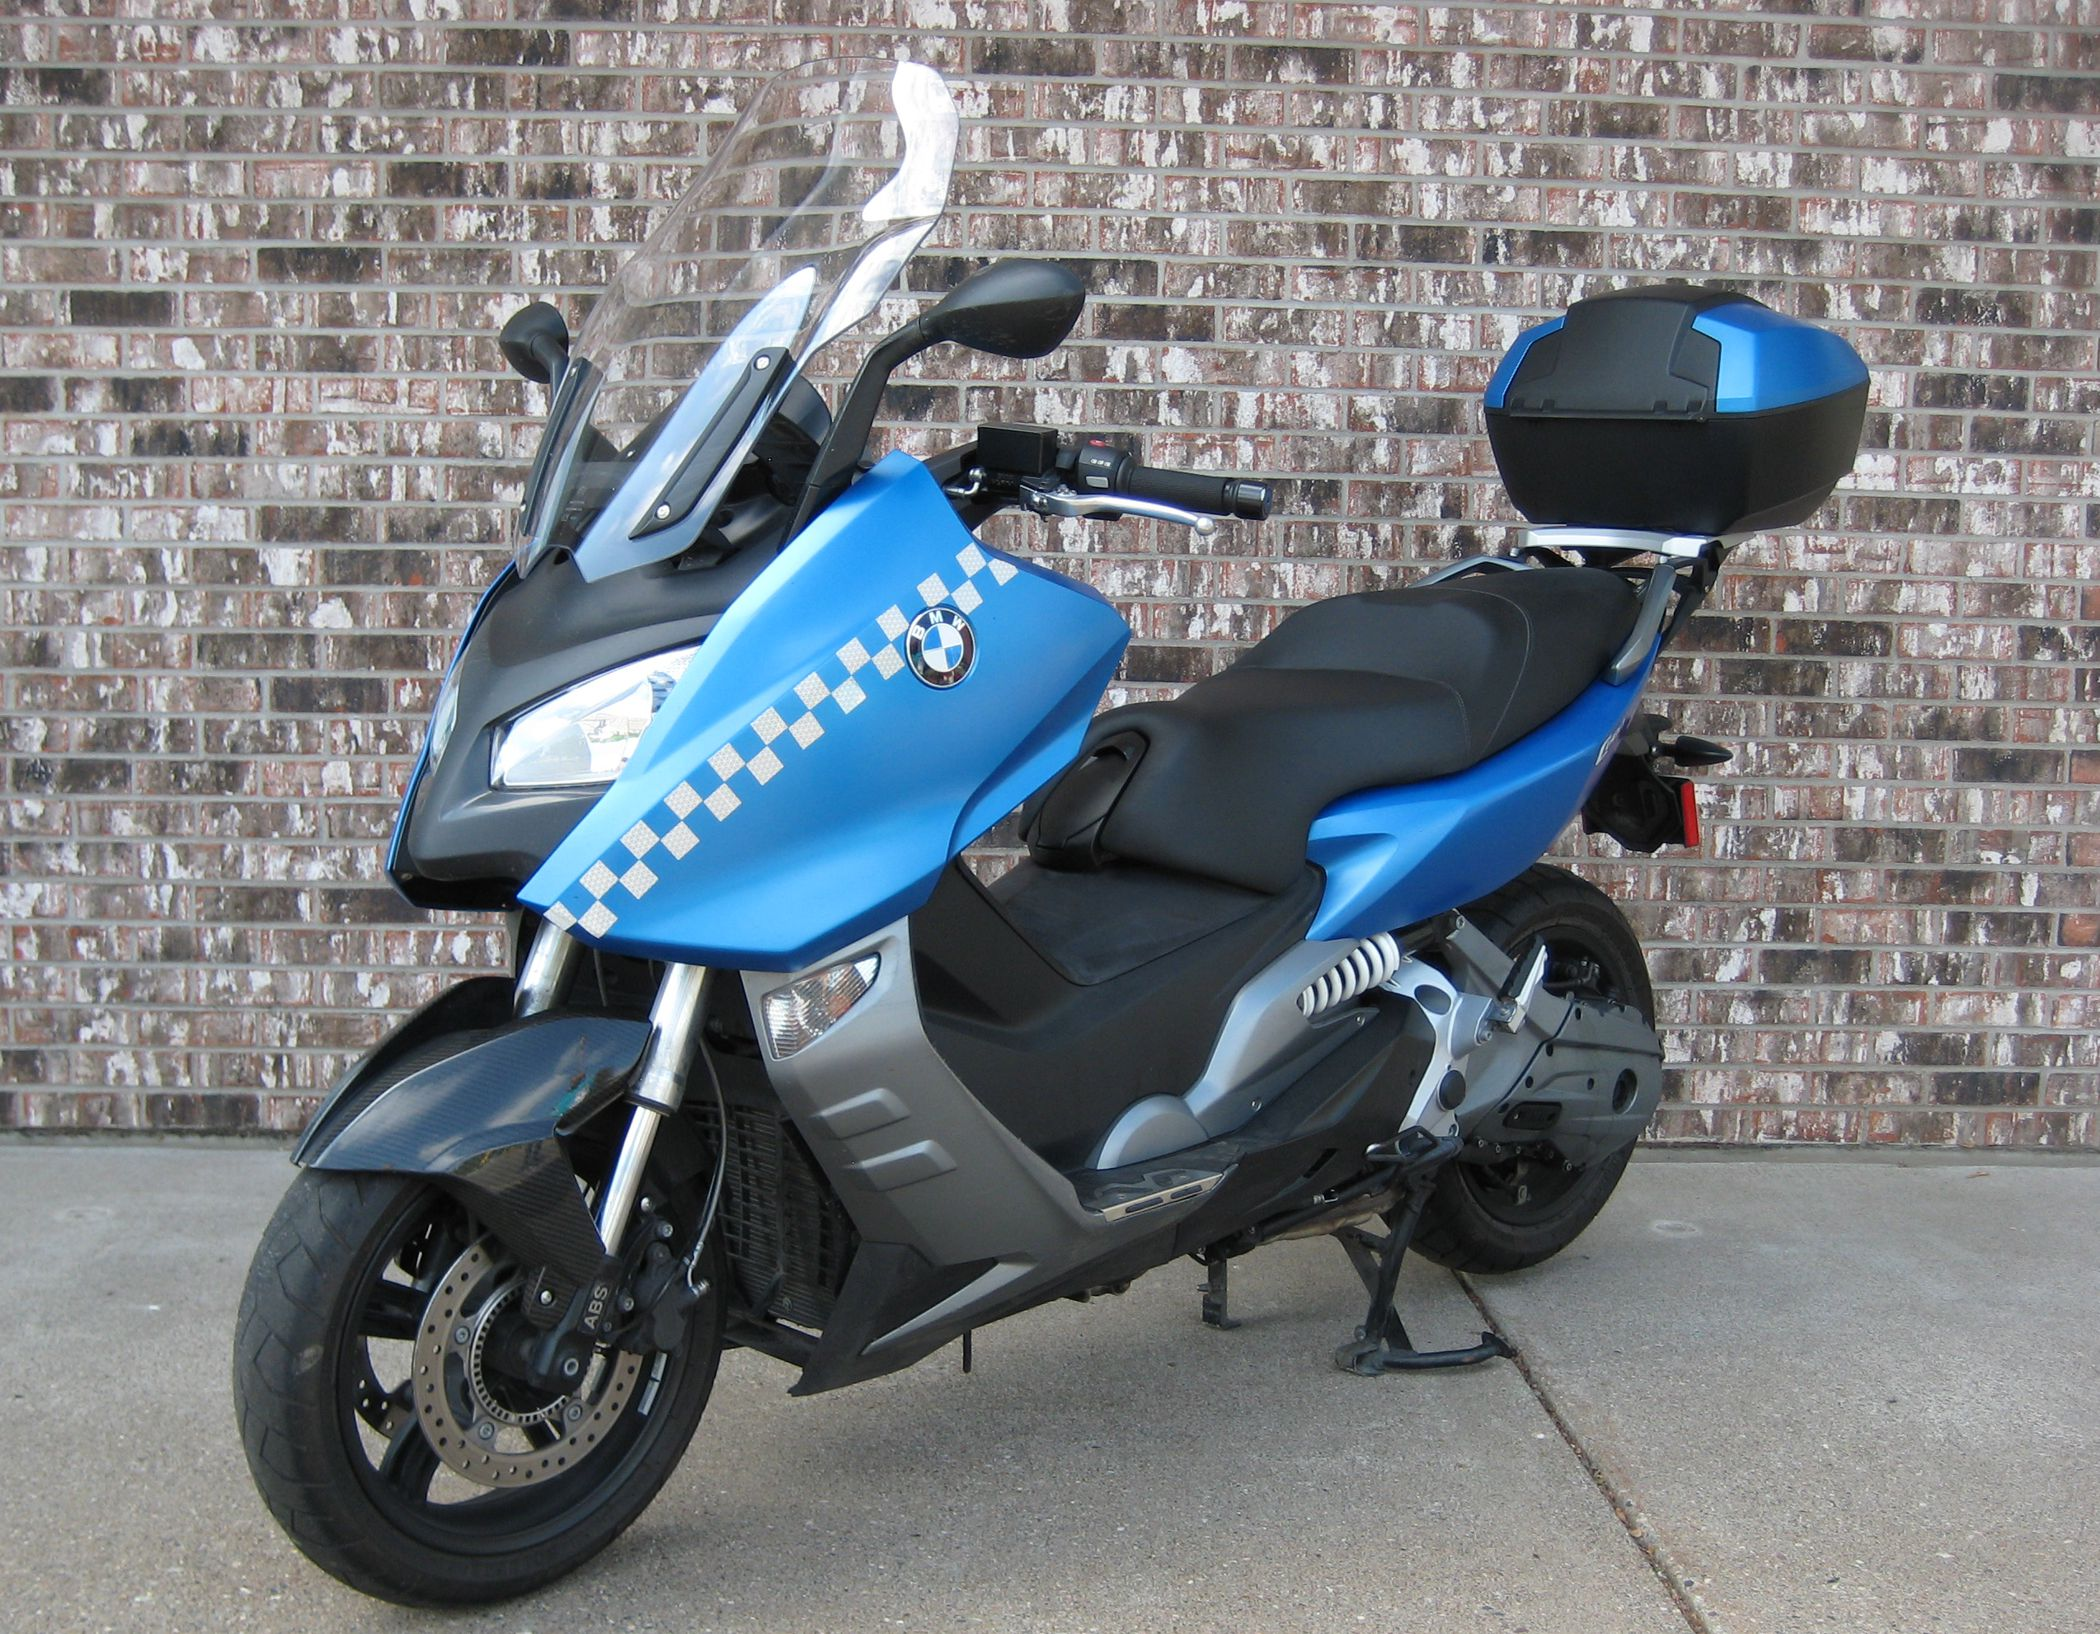 2013 BMW C600 Sport Scooter Review